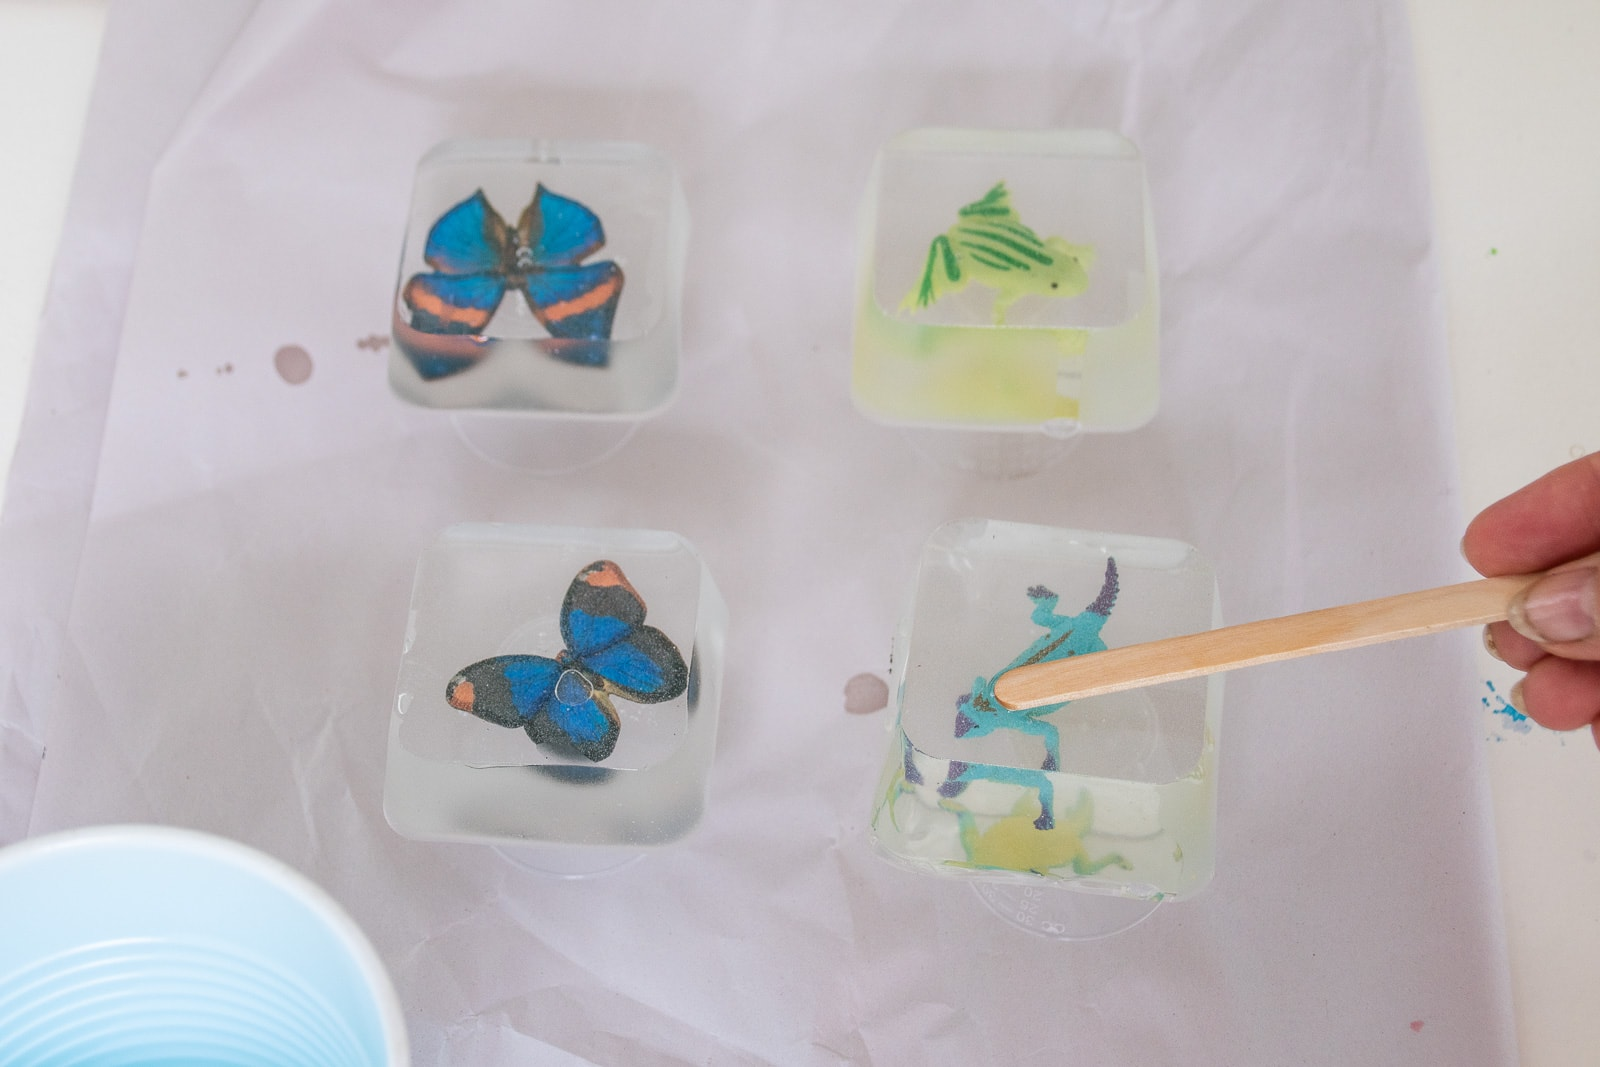 removing resin molds